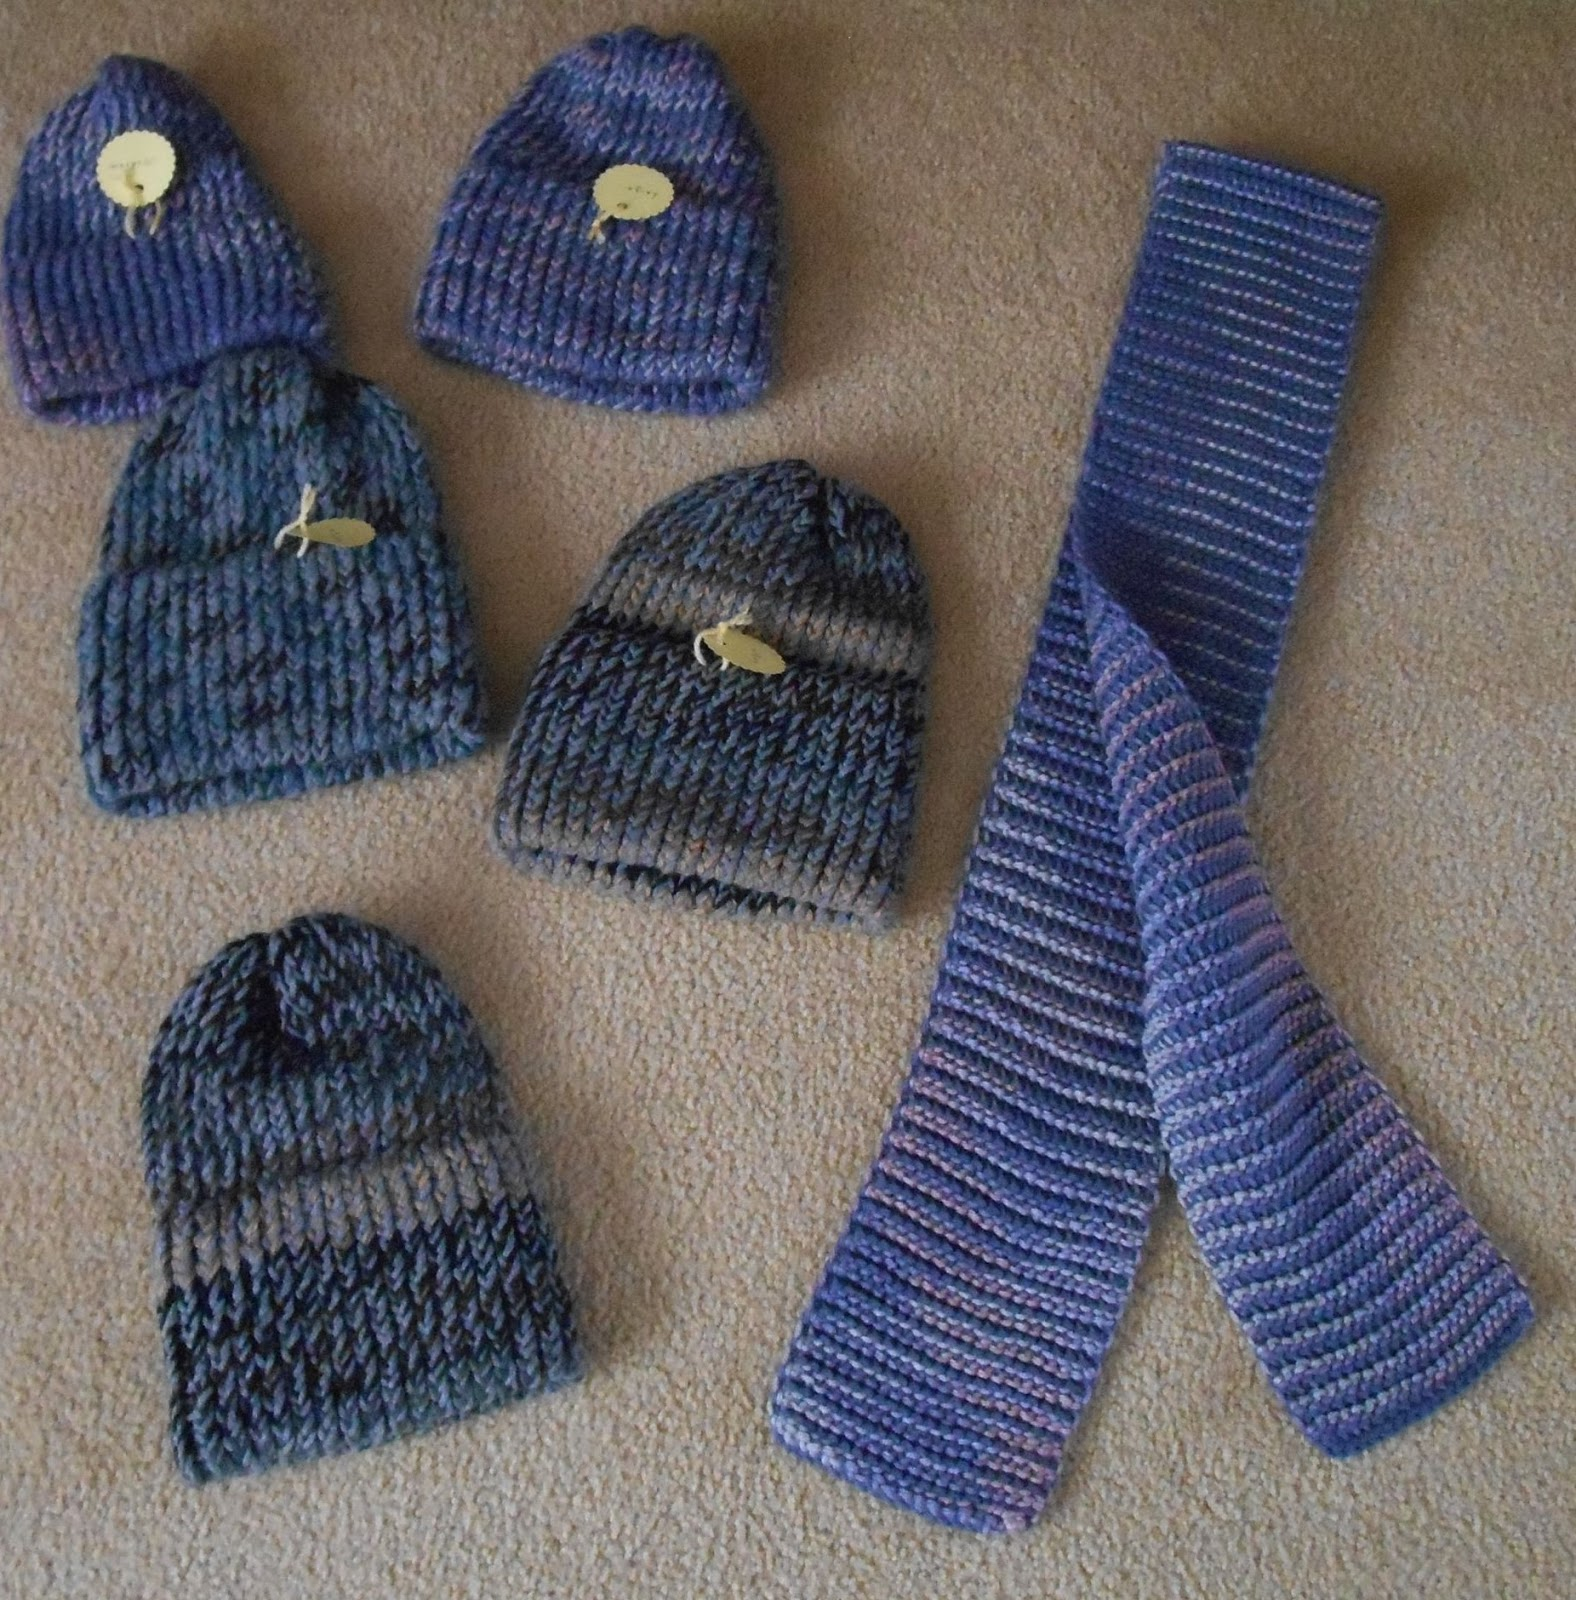 Bridge and Beyond: Knitted Hats and Scarves for the Homeless